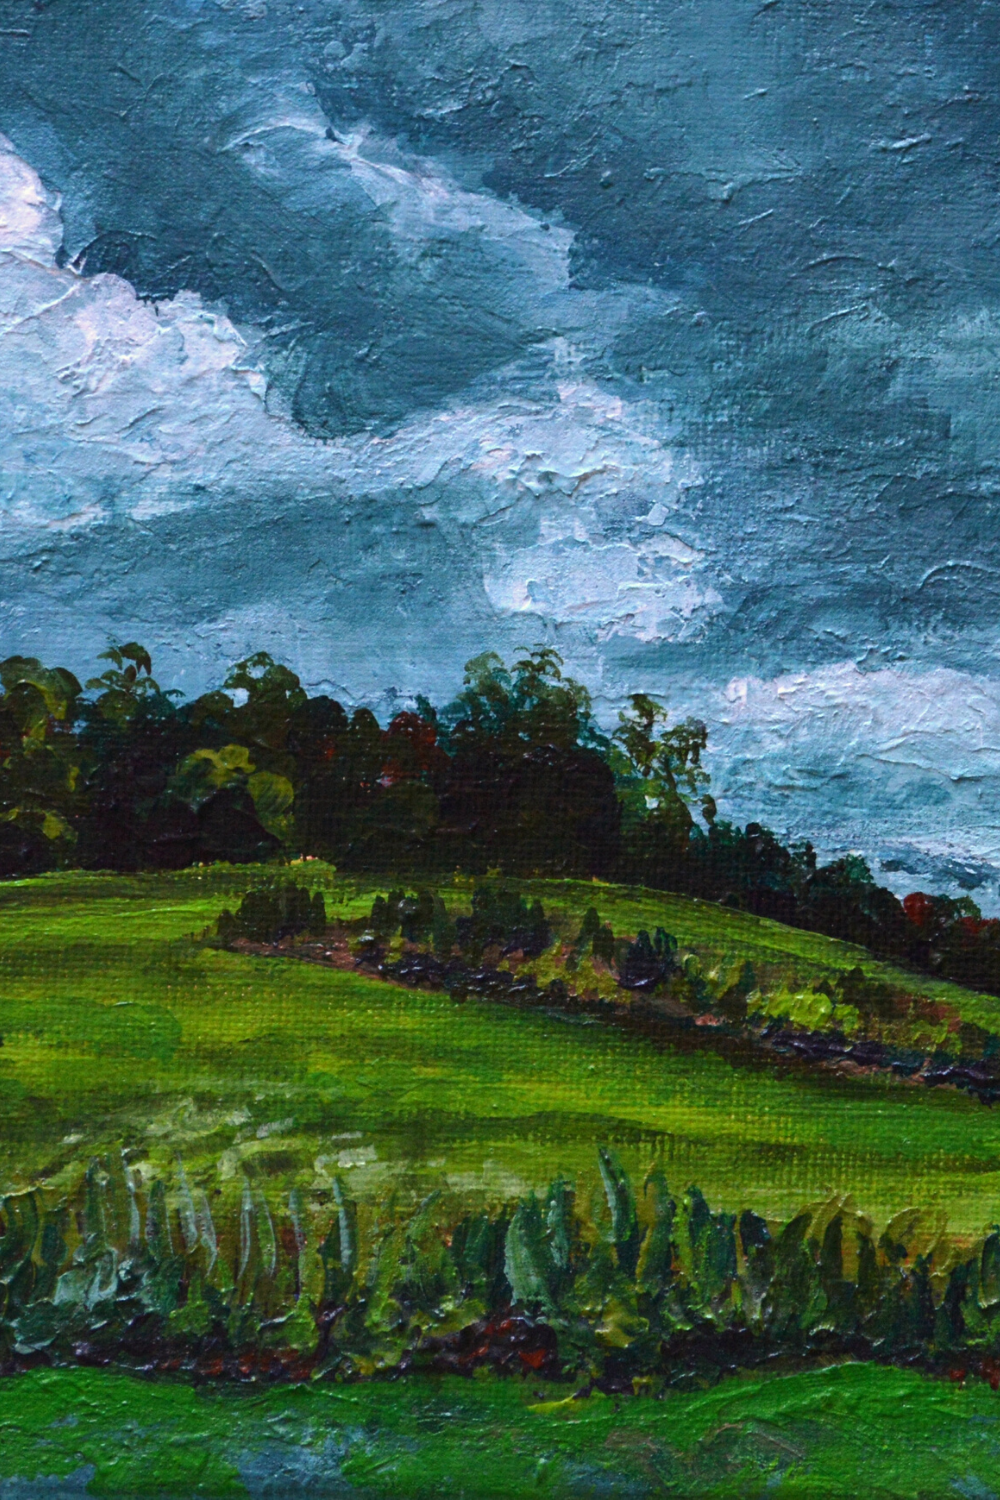 I create beautiful, original paintings for your home. Colorful landscapes are my favorite along with flower paintings and commissions. Most of my wall art canvas contains trees, oceans, beaches, flowers, lakes, and other colorful landscapes. I offer original paintings and fine art prints of my work. #landscapepainting #treeart #natureart #farmhousedecor #etsy #landscape #stormpainting #farmfields #wildflower #originalart #homedecor #oilpainting #canvaswallart